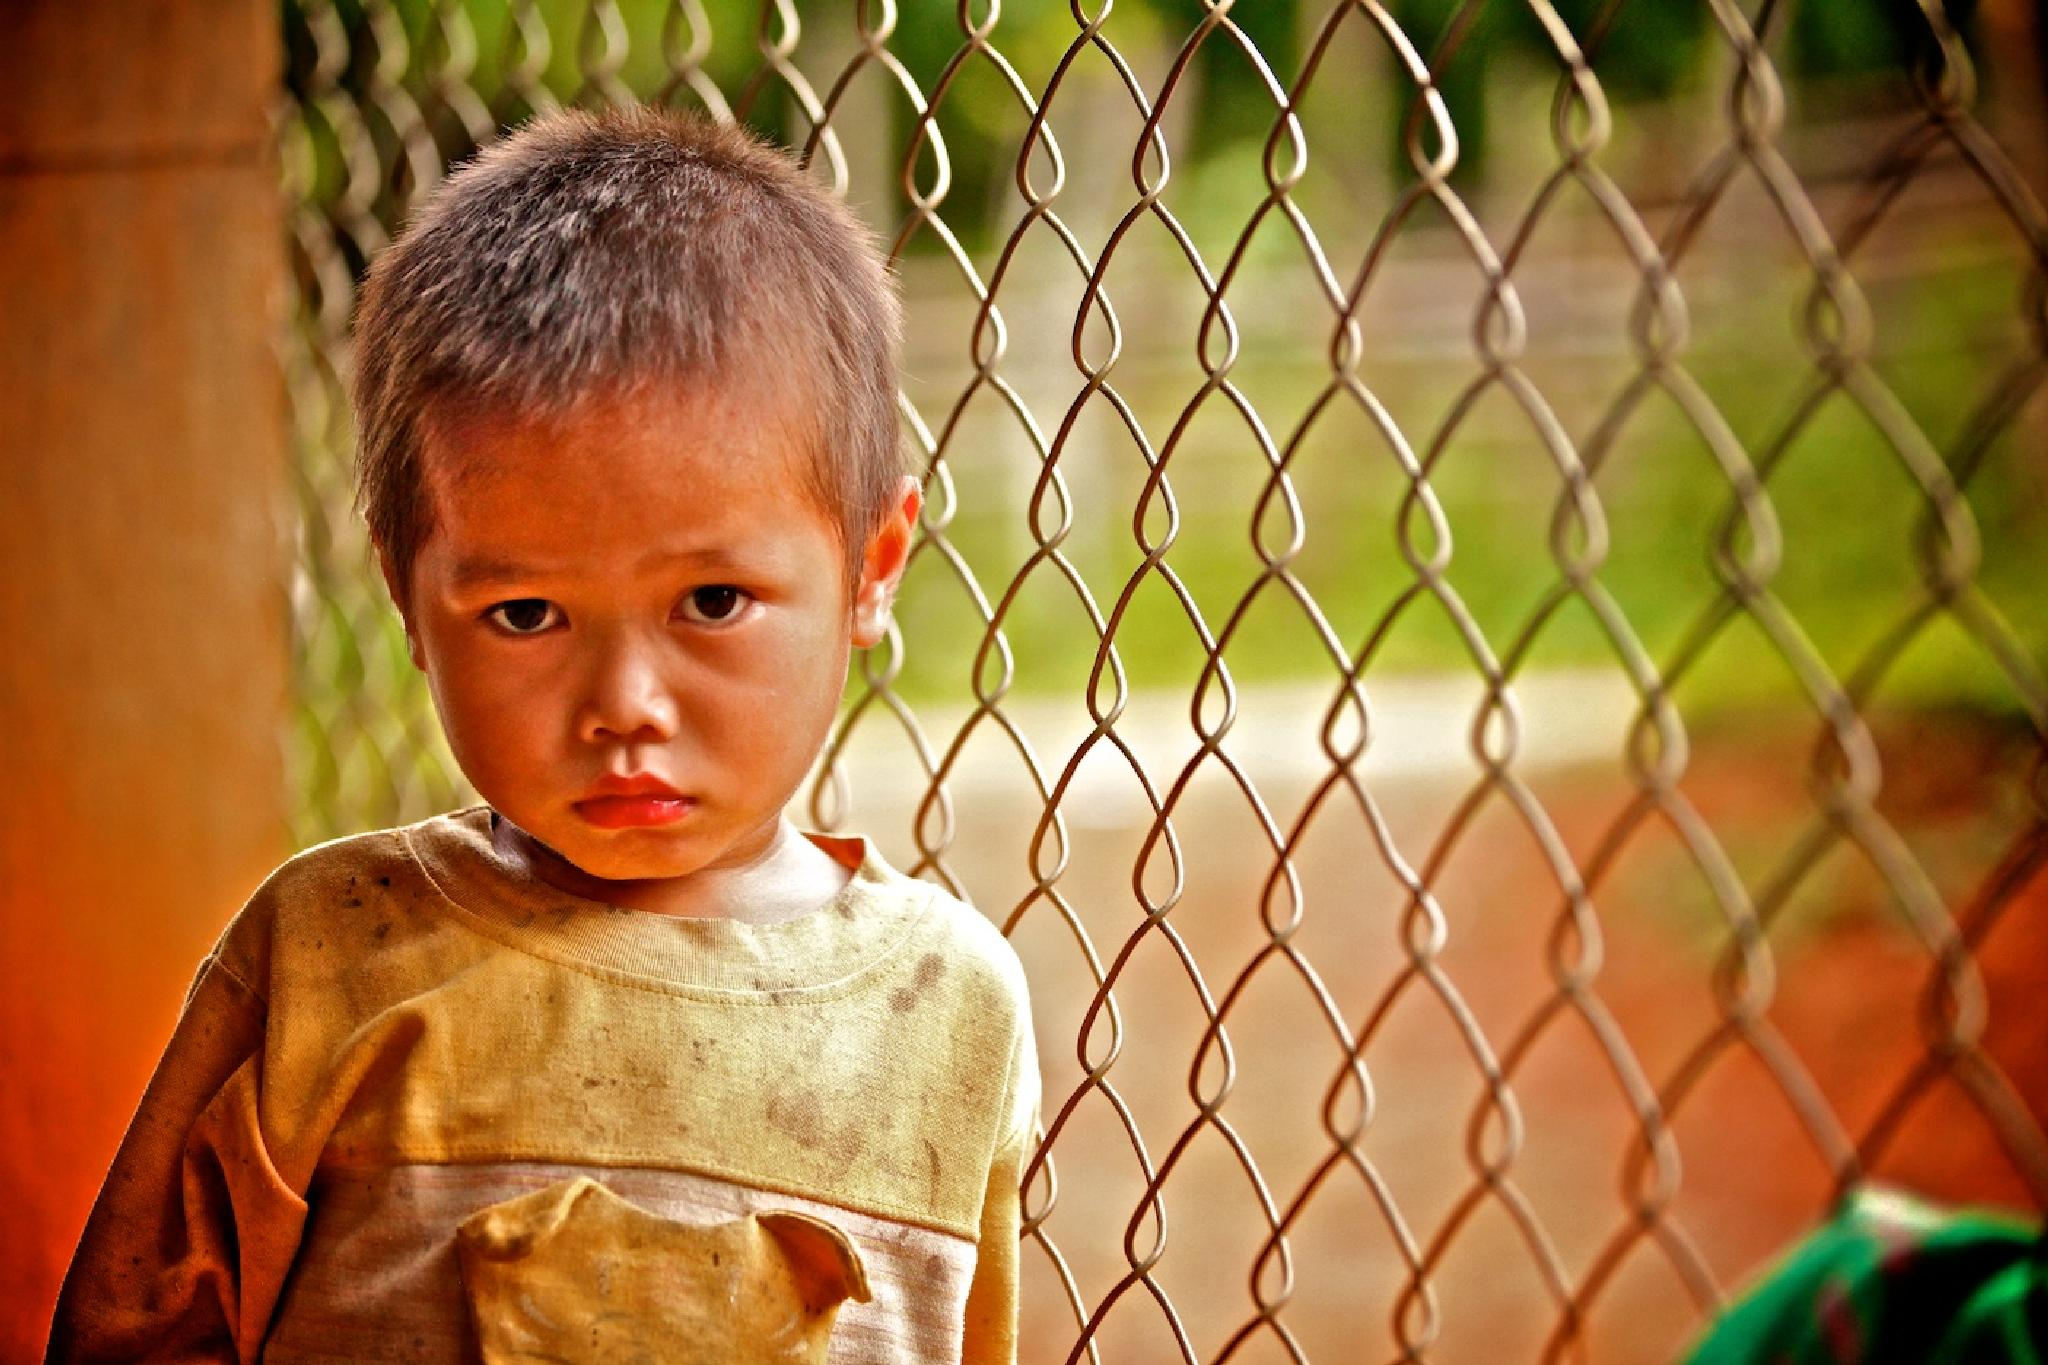 Fence and a Boy by Mark Jacobs